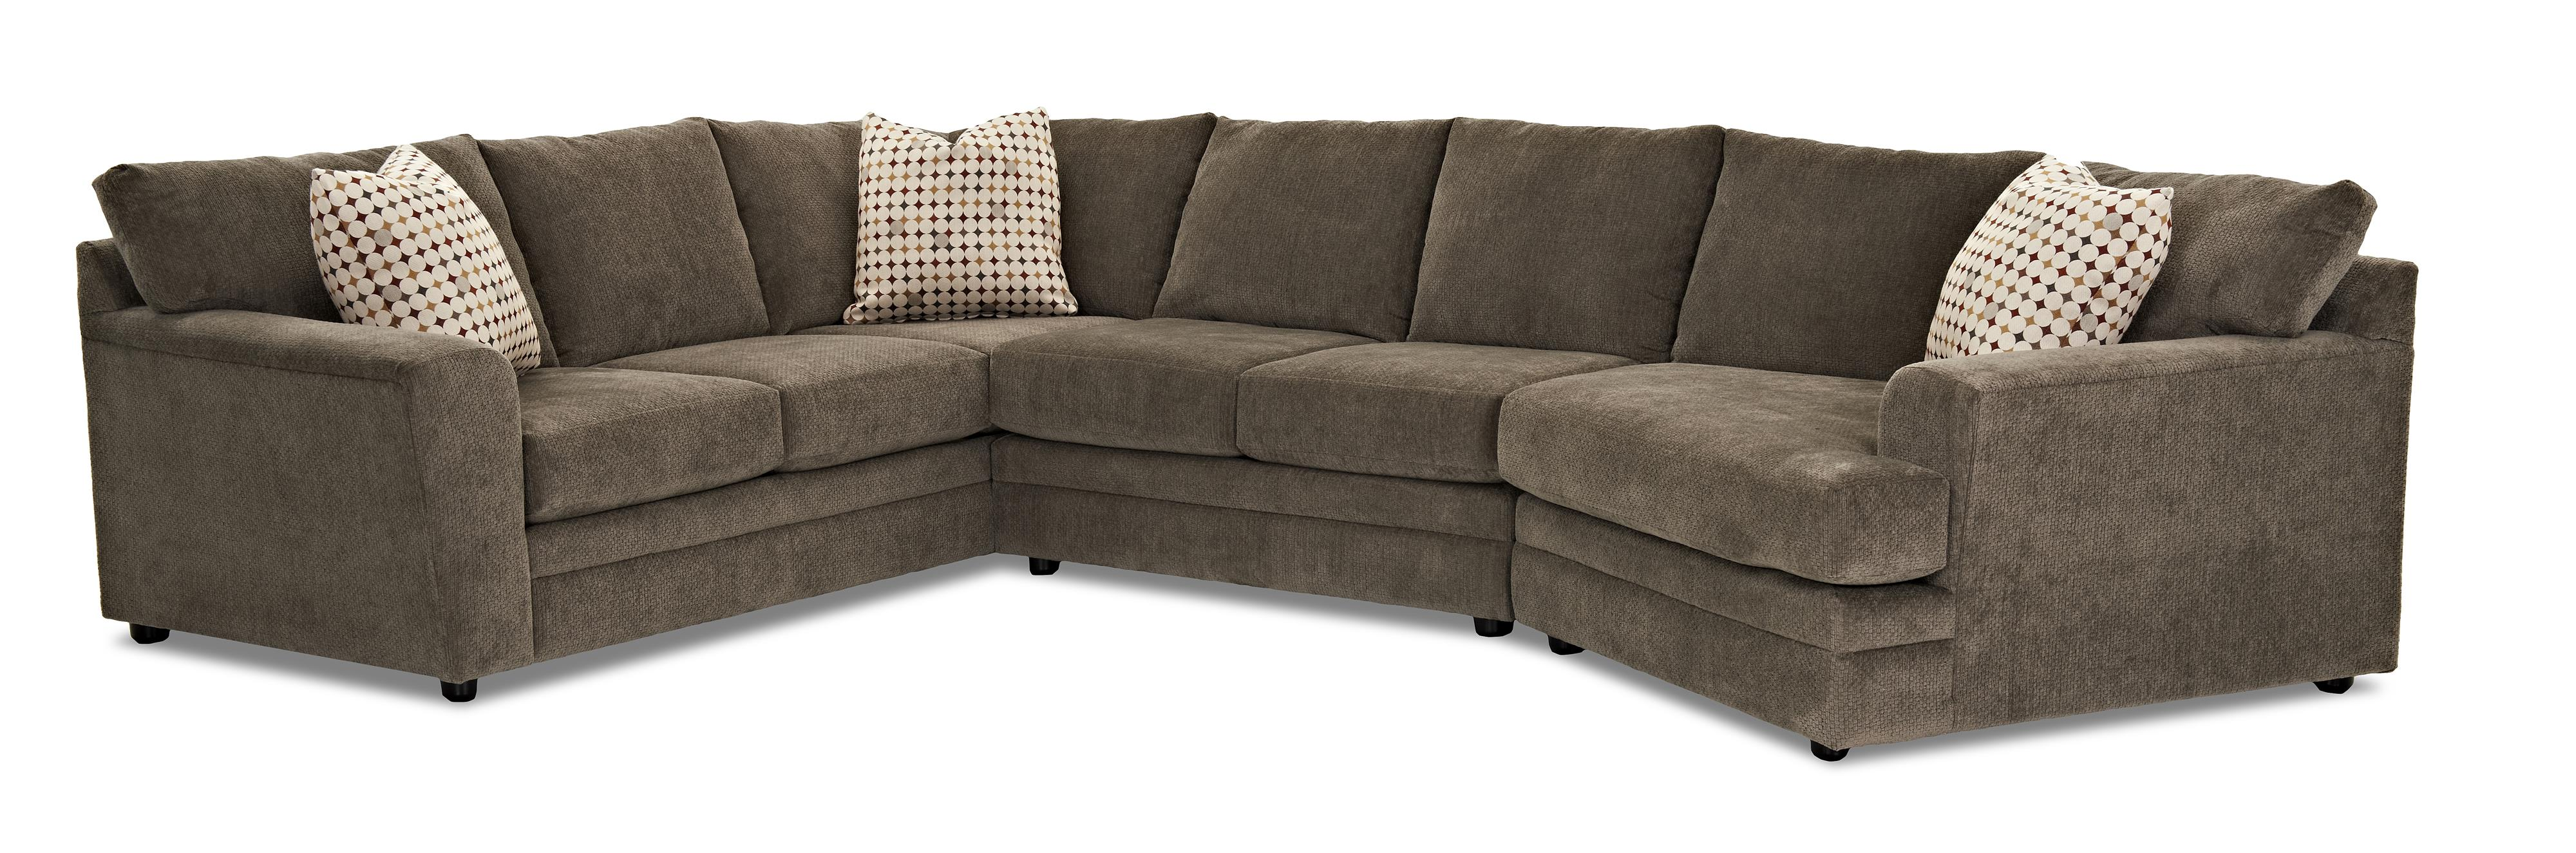 klaussner sofa and loveseat set floral loveseats sofas ashburn casual sectional group olinde 39s